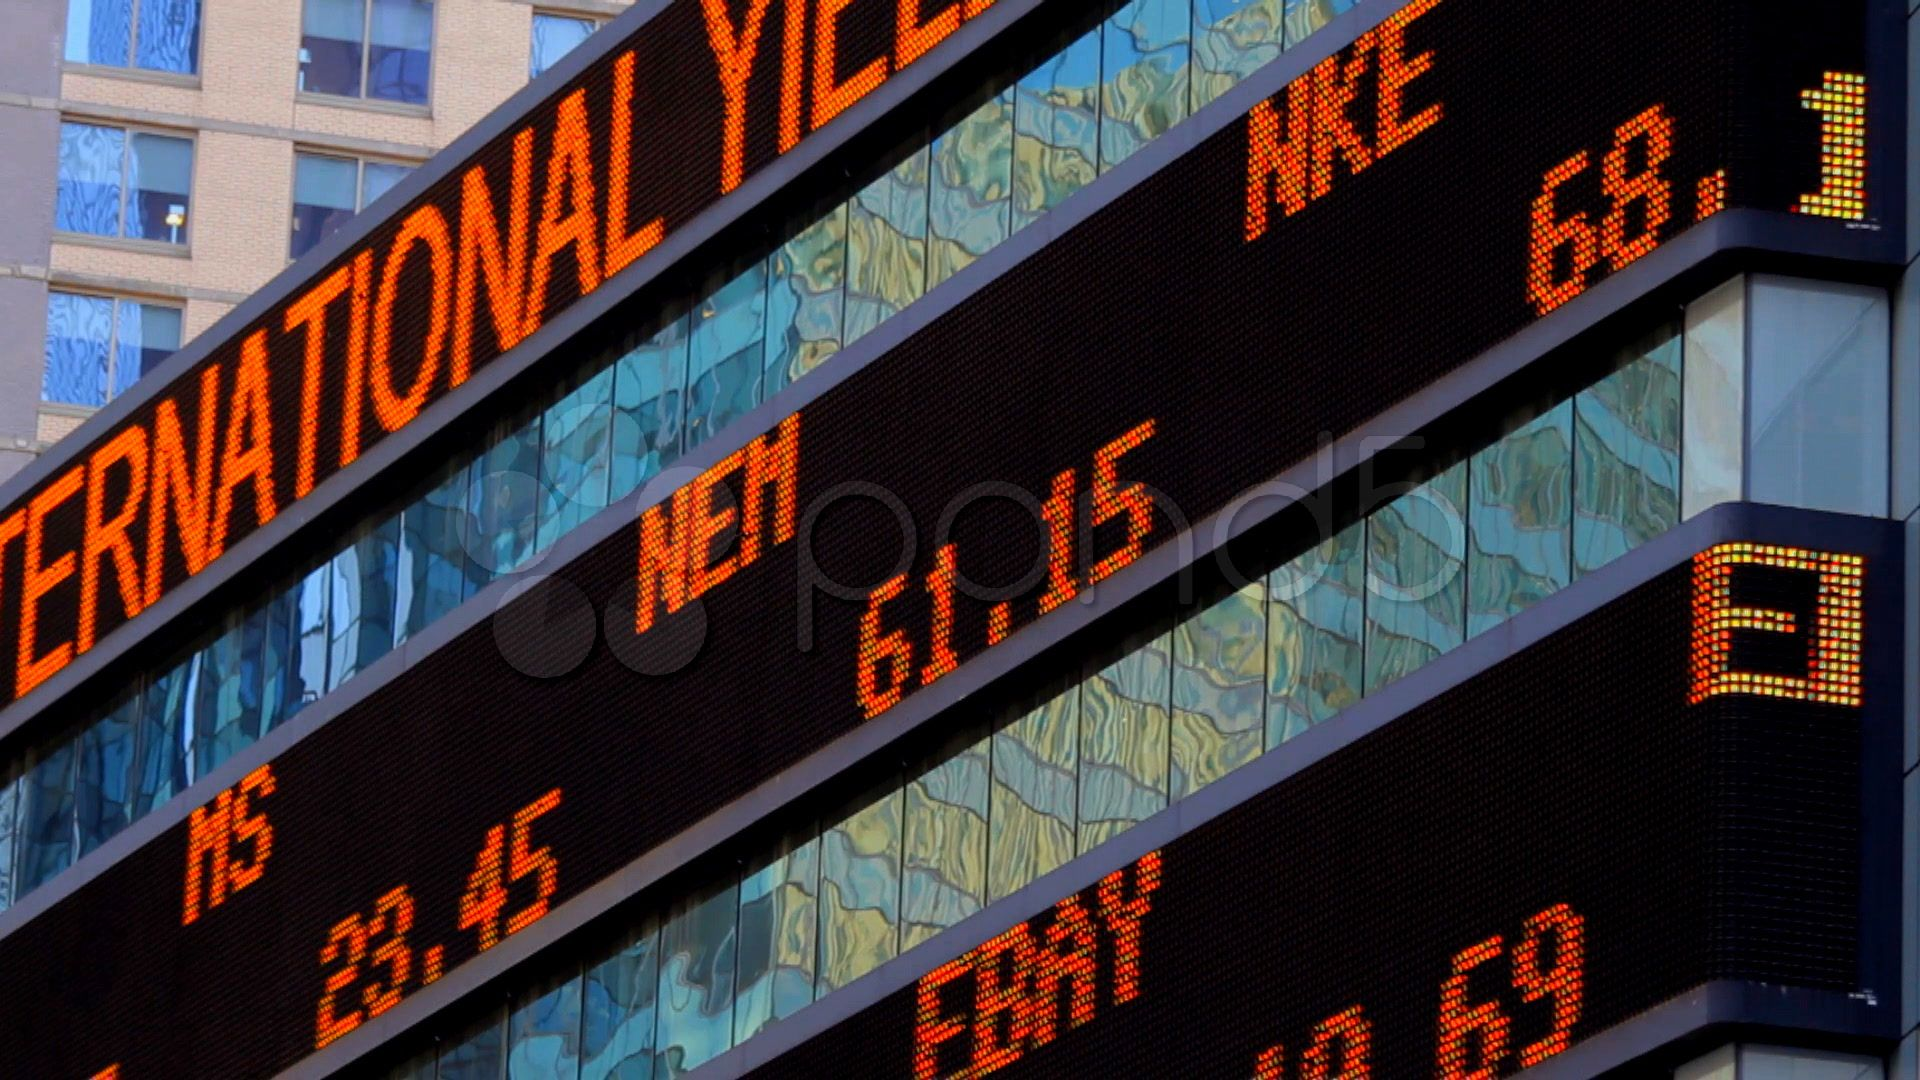 Stock Market Ticker Stock Footage Market Stock Footage Ticker Stock Market Ticker Stock Ticker Stock Market